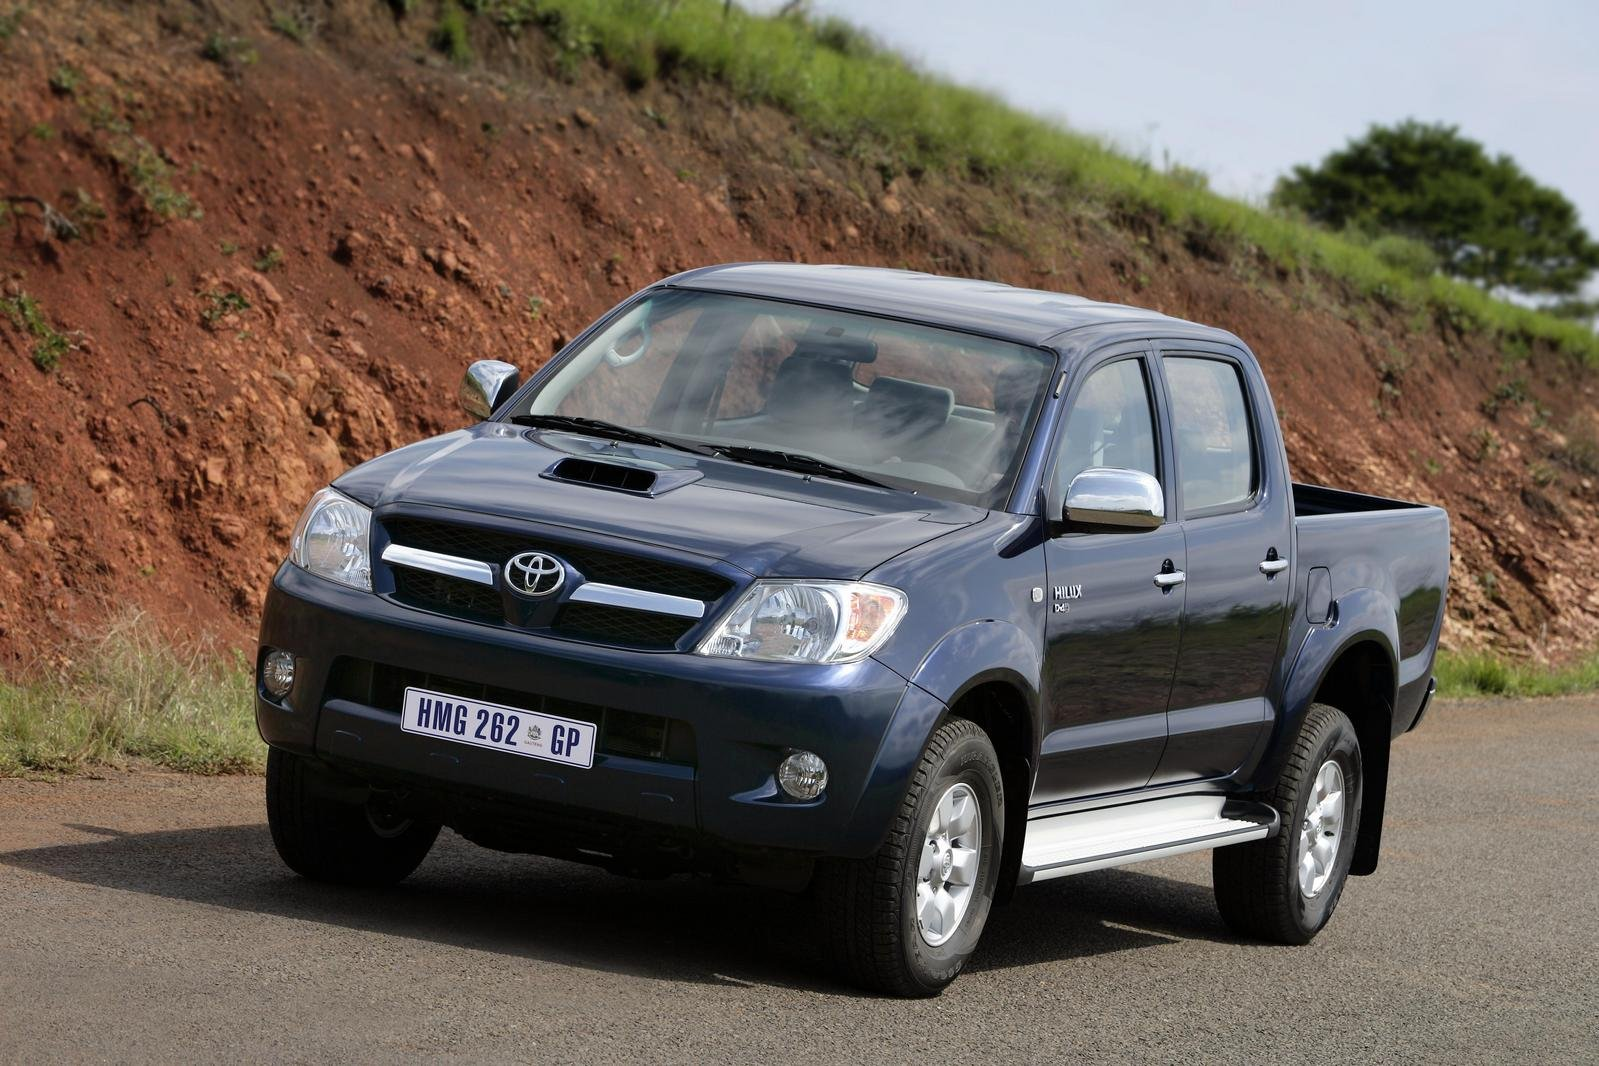 2007 toyota hilux picture 158004 car review top speed. Black Bedroom Furniture Sets. Home Design Ideas